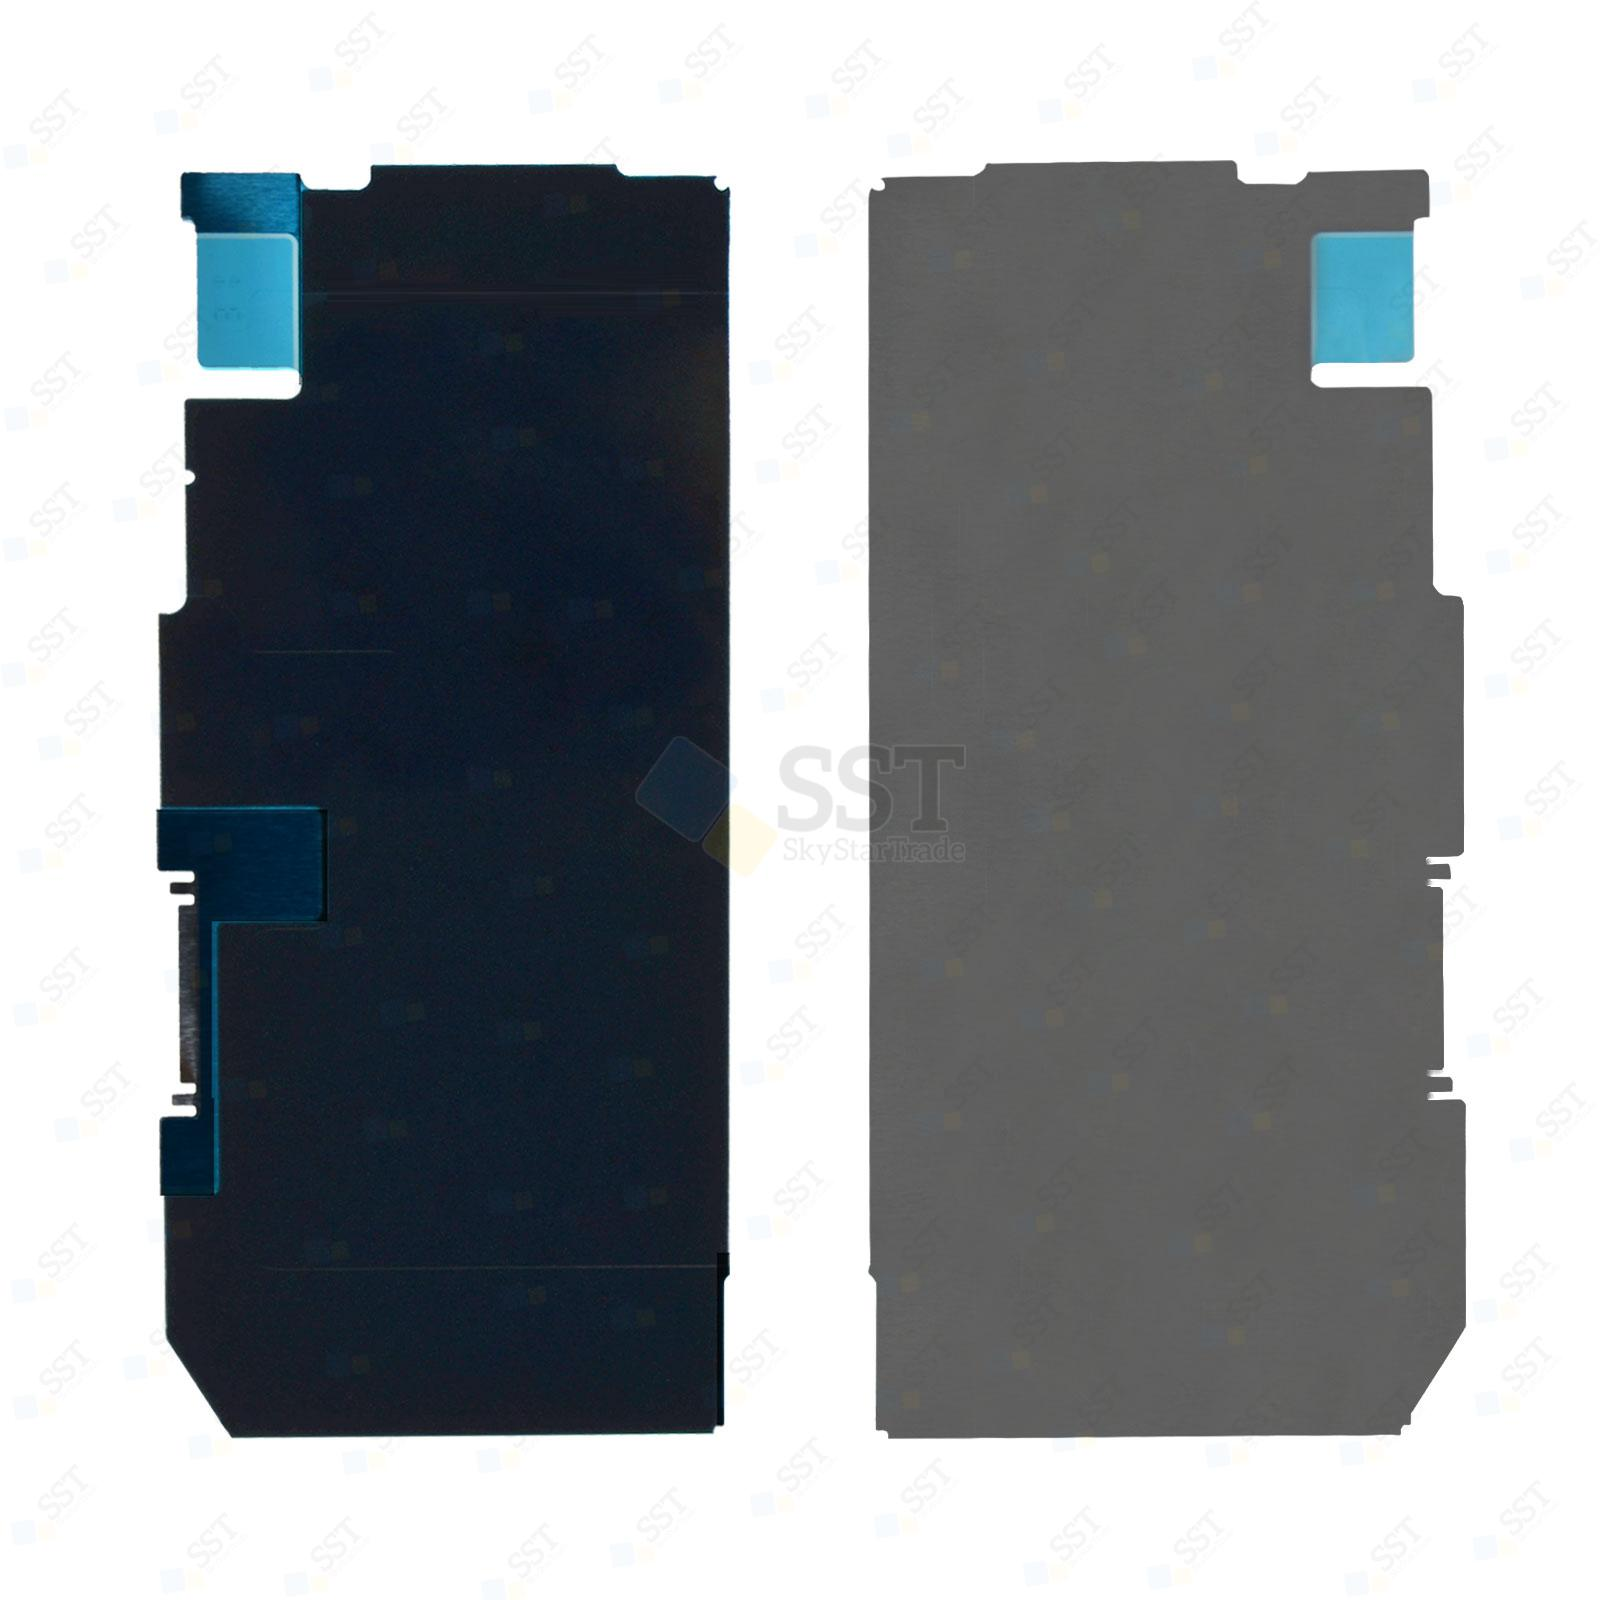 iPhone XS Max A1921 A2101 A2102 A2103 A2104 LCD Screen Back Heat Dissipation Antistatic Sticker Tape